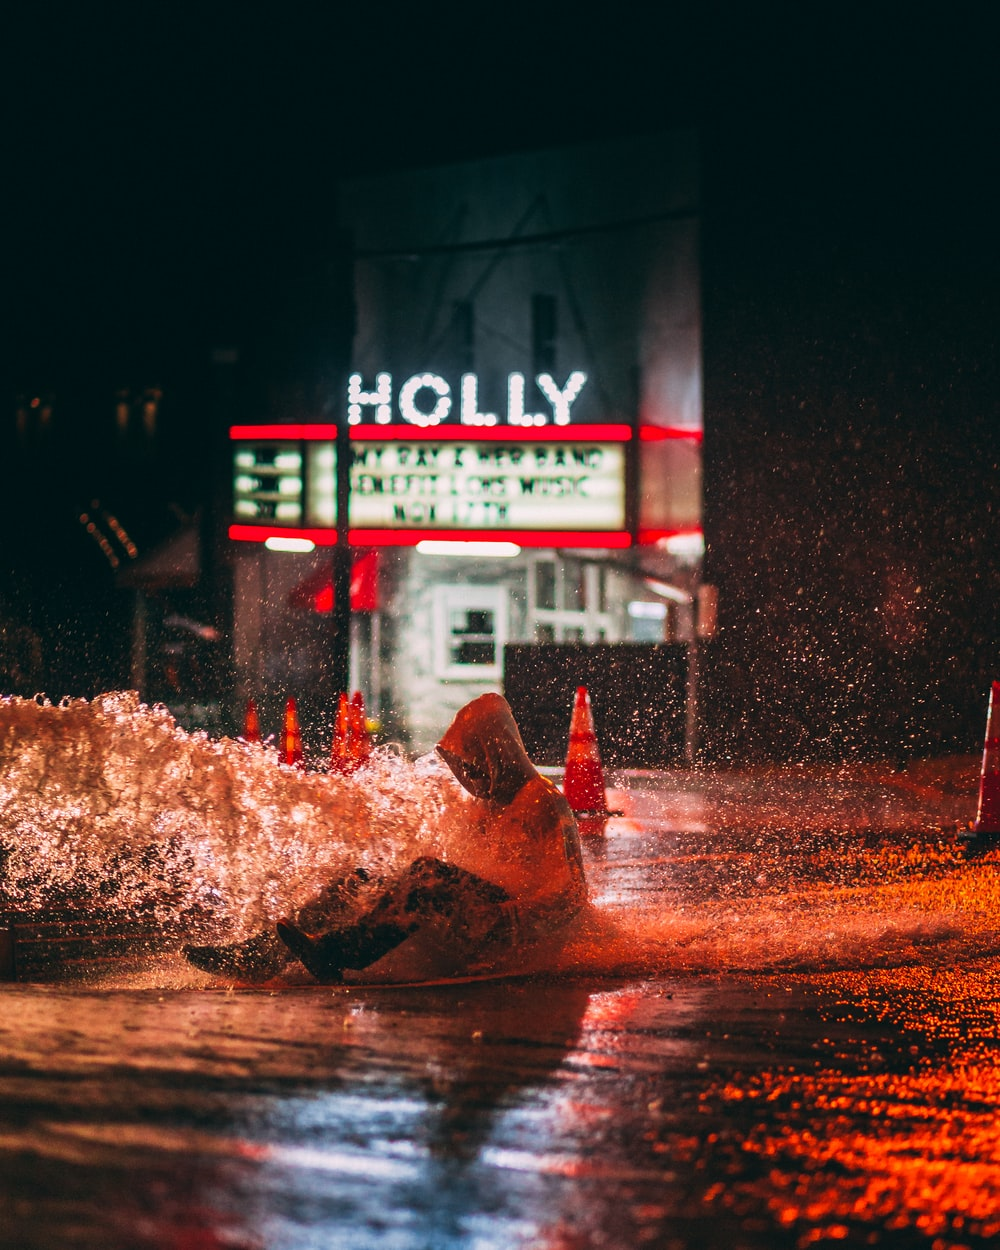 person sitting on watery road near Holly building